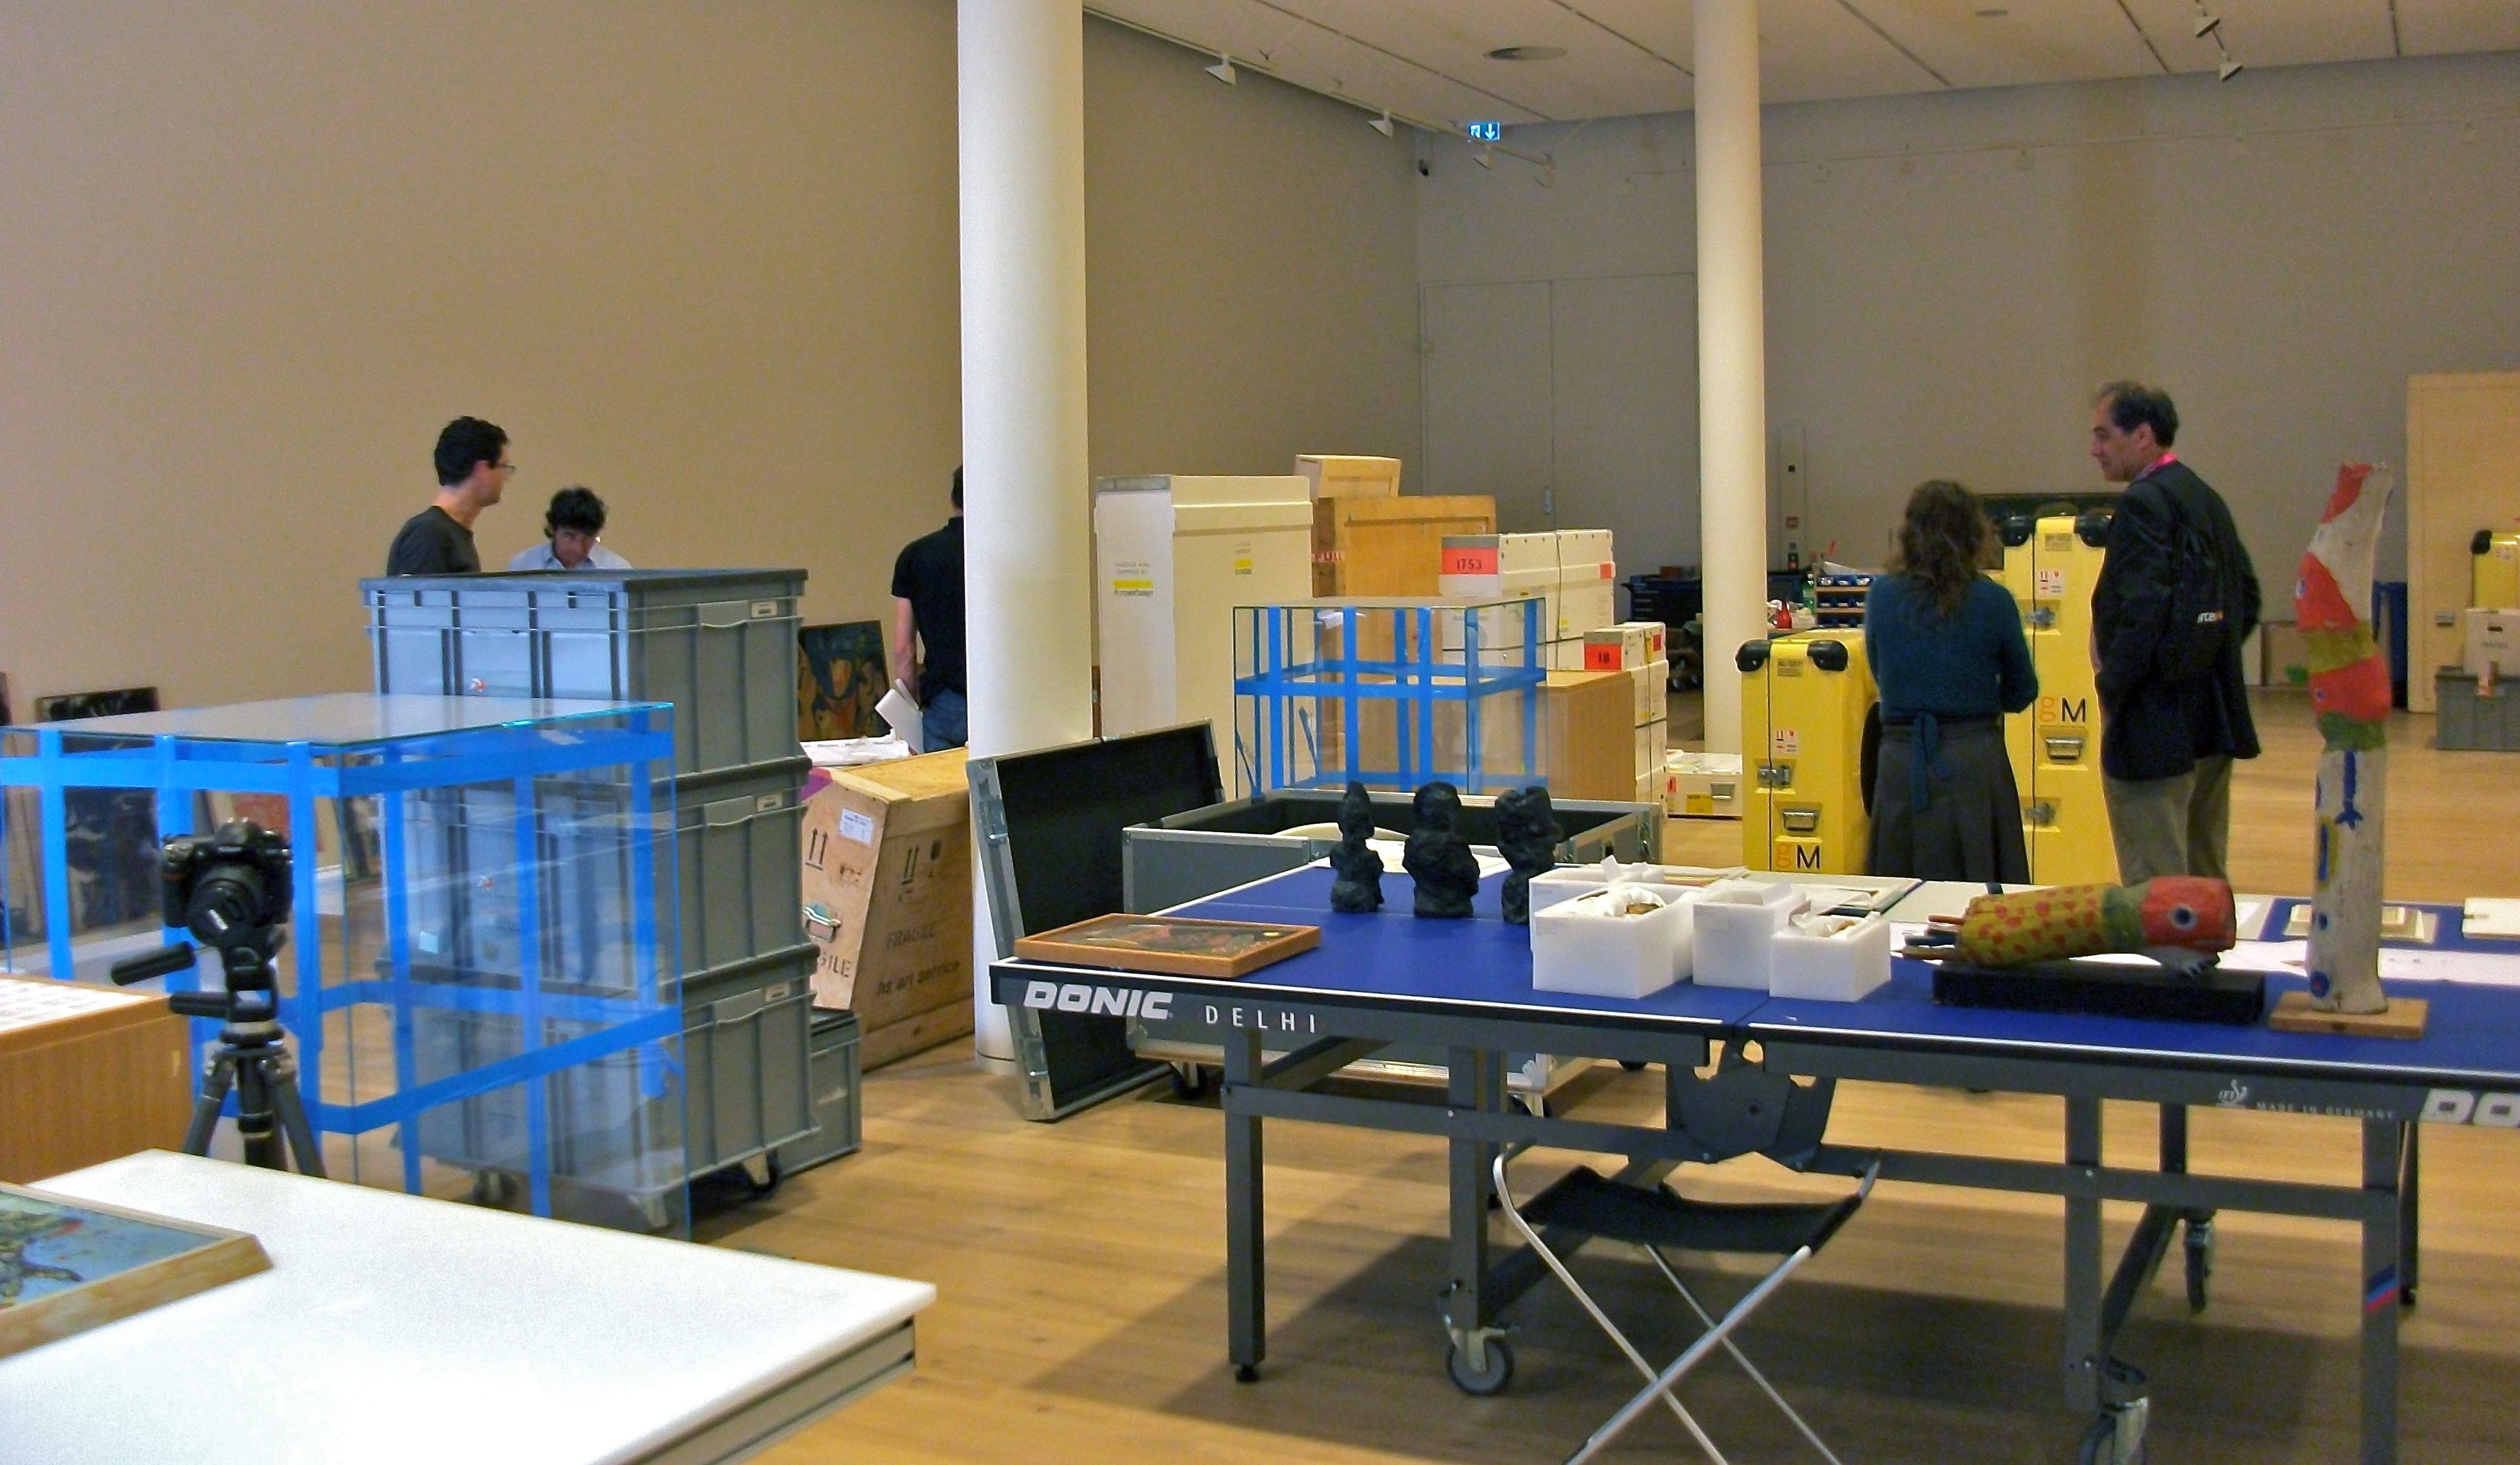 Exhibition installation, crates transit storage